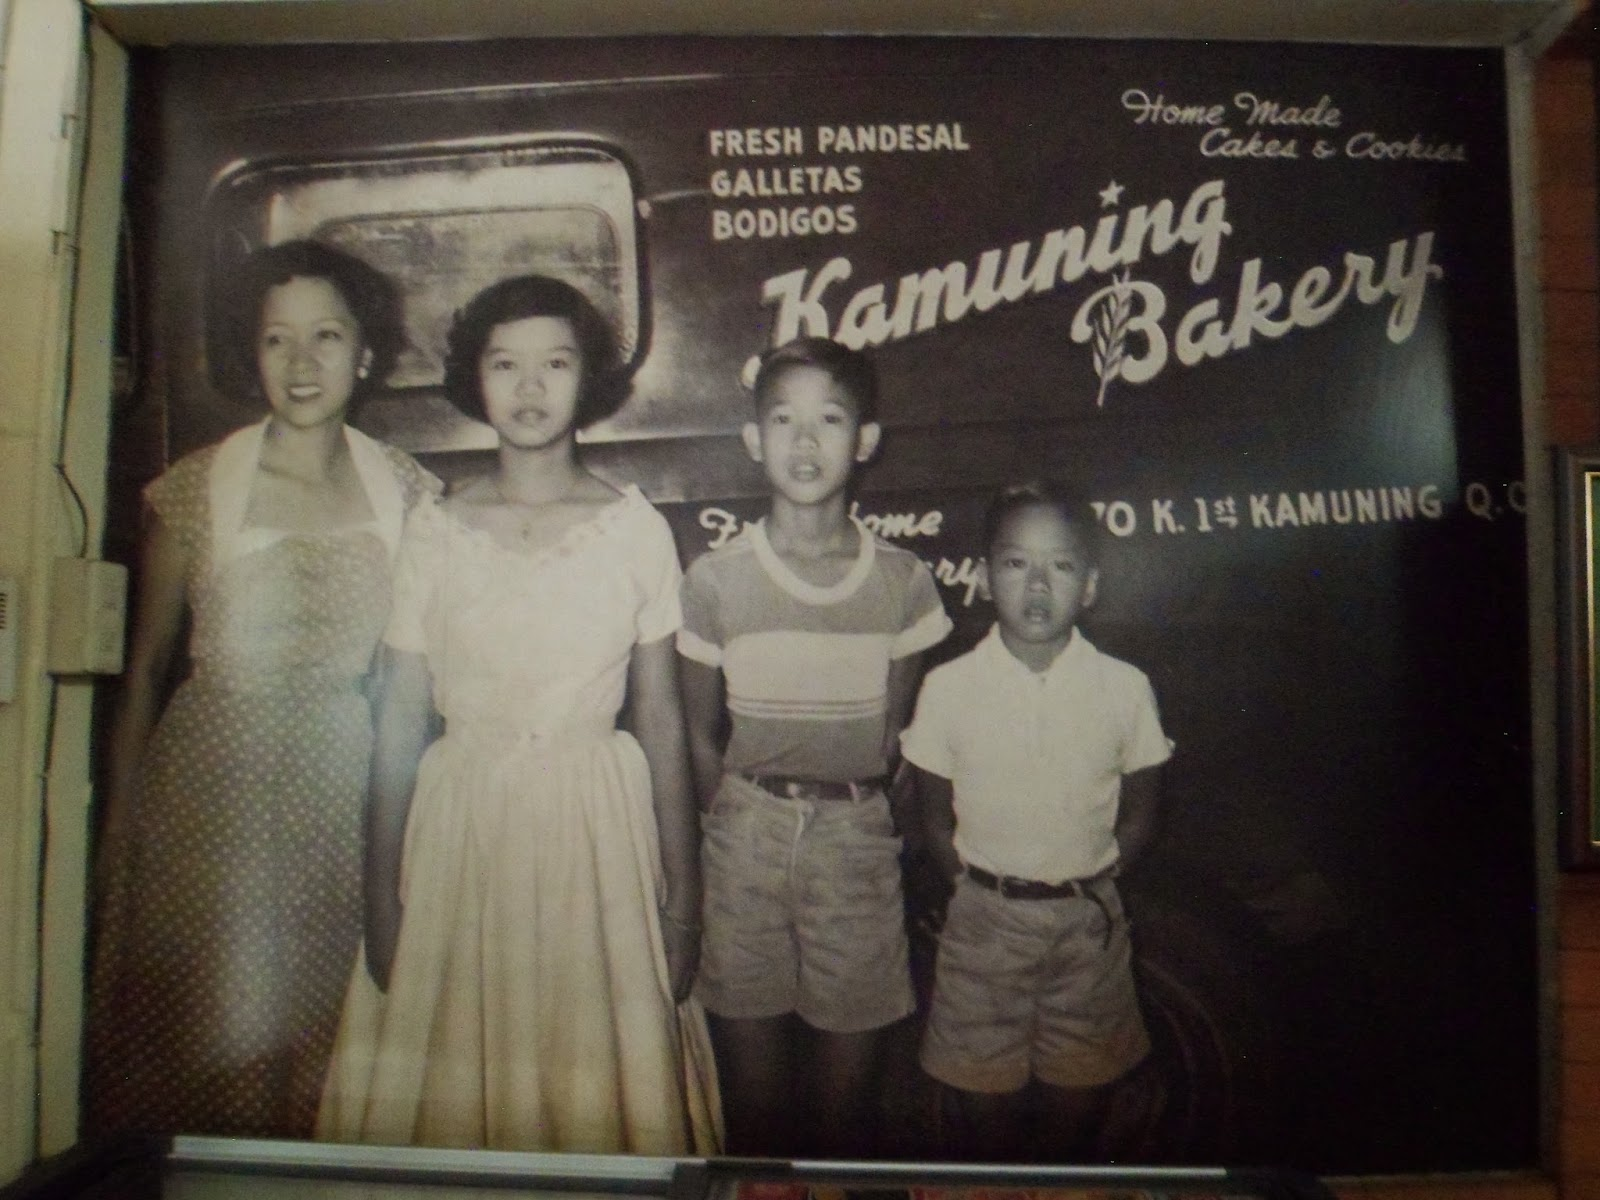 Kamuning Bakery: Bringing Back The History Of Its Breads